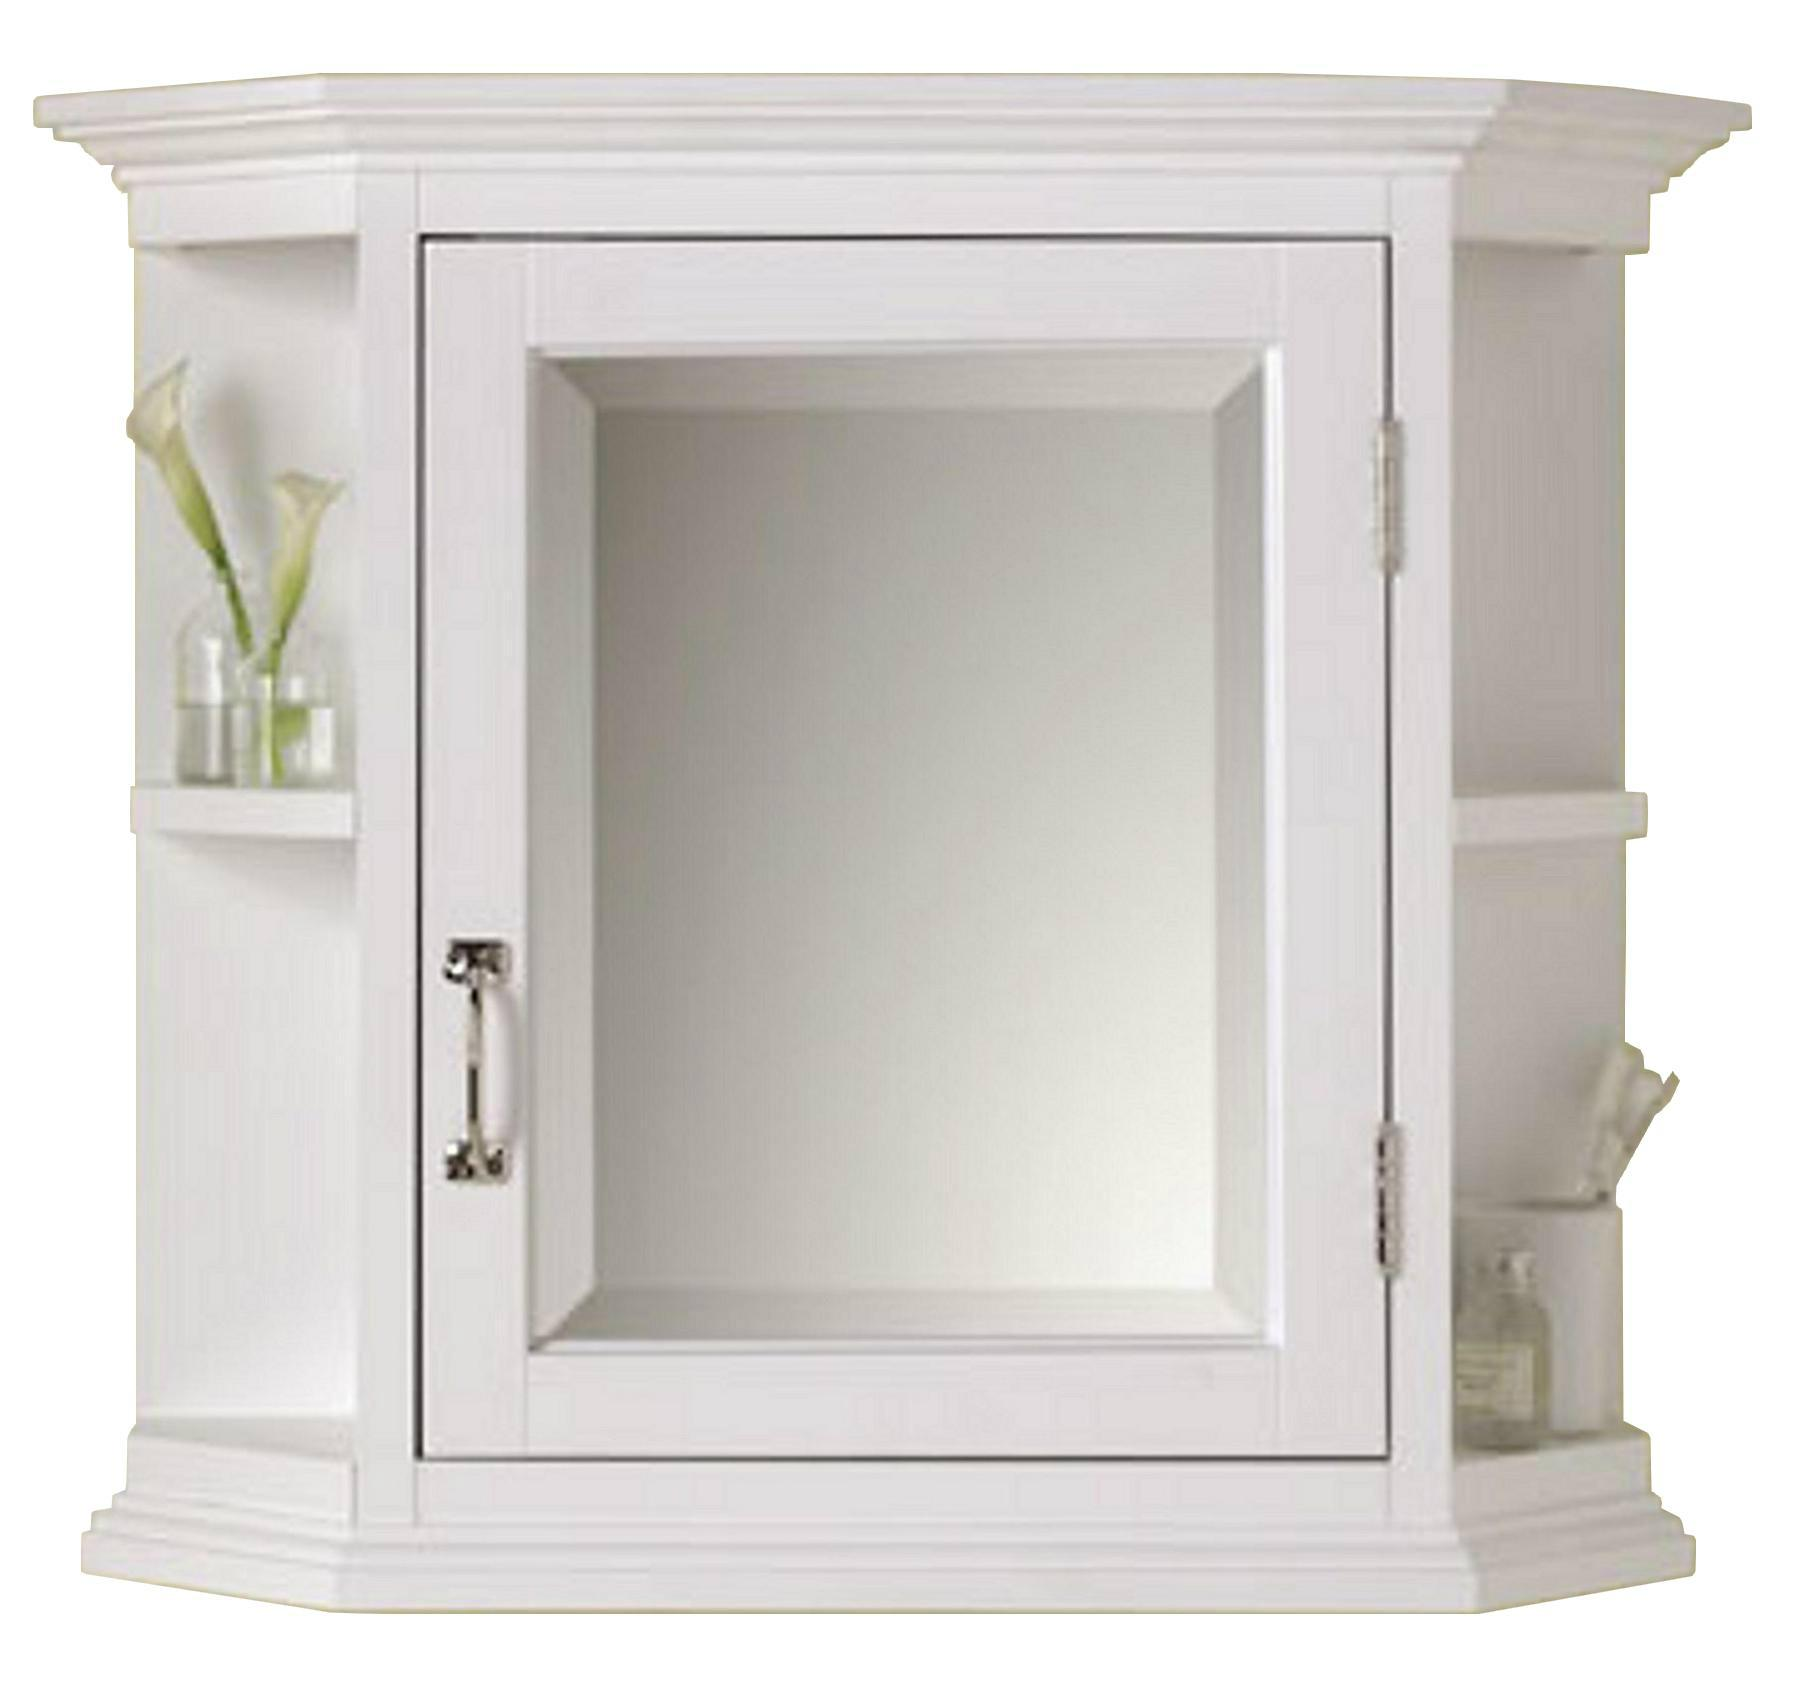 bathroom mirrored medicine cabinet octagonal style vintage mirrored bathroom medicine cabinet 16277